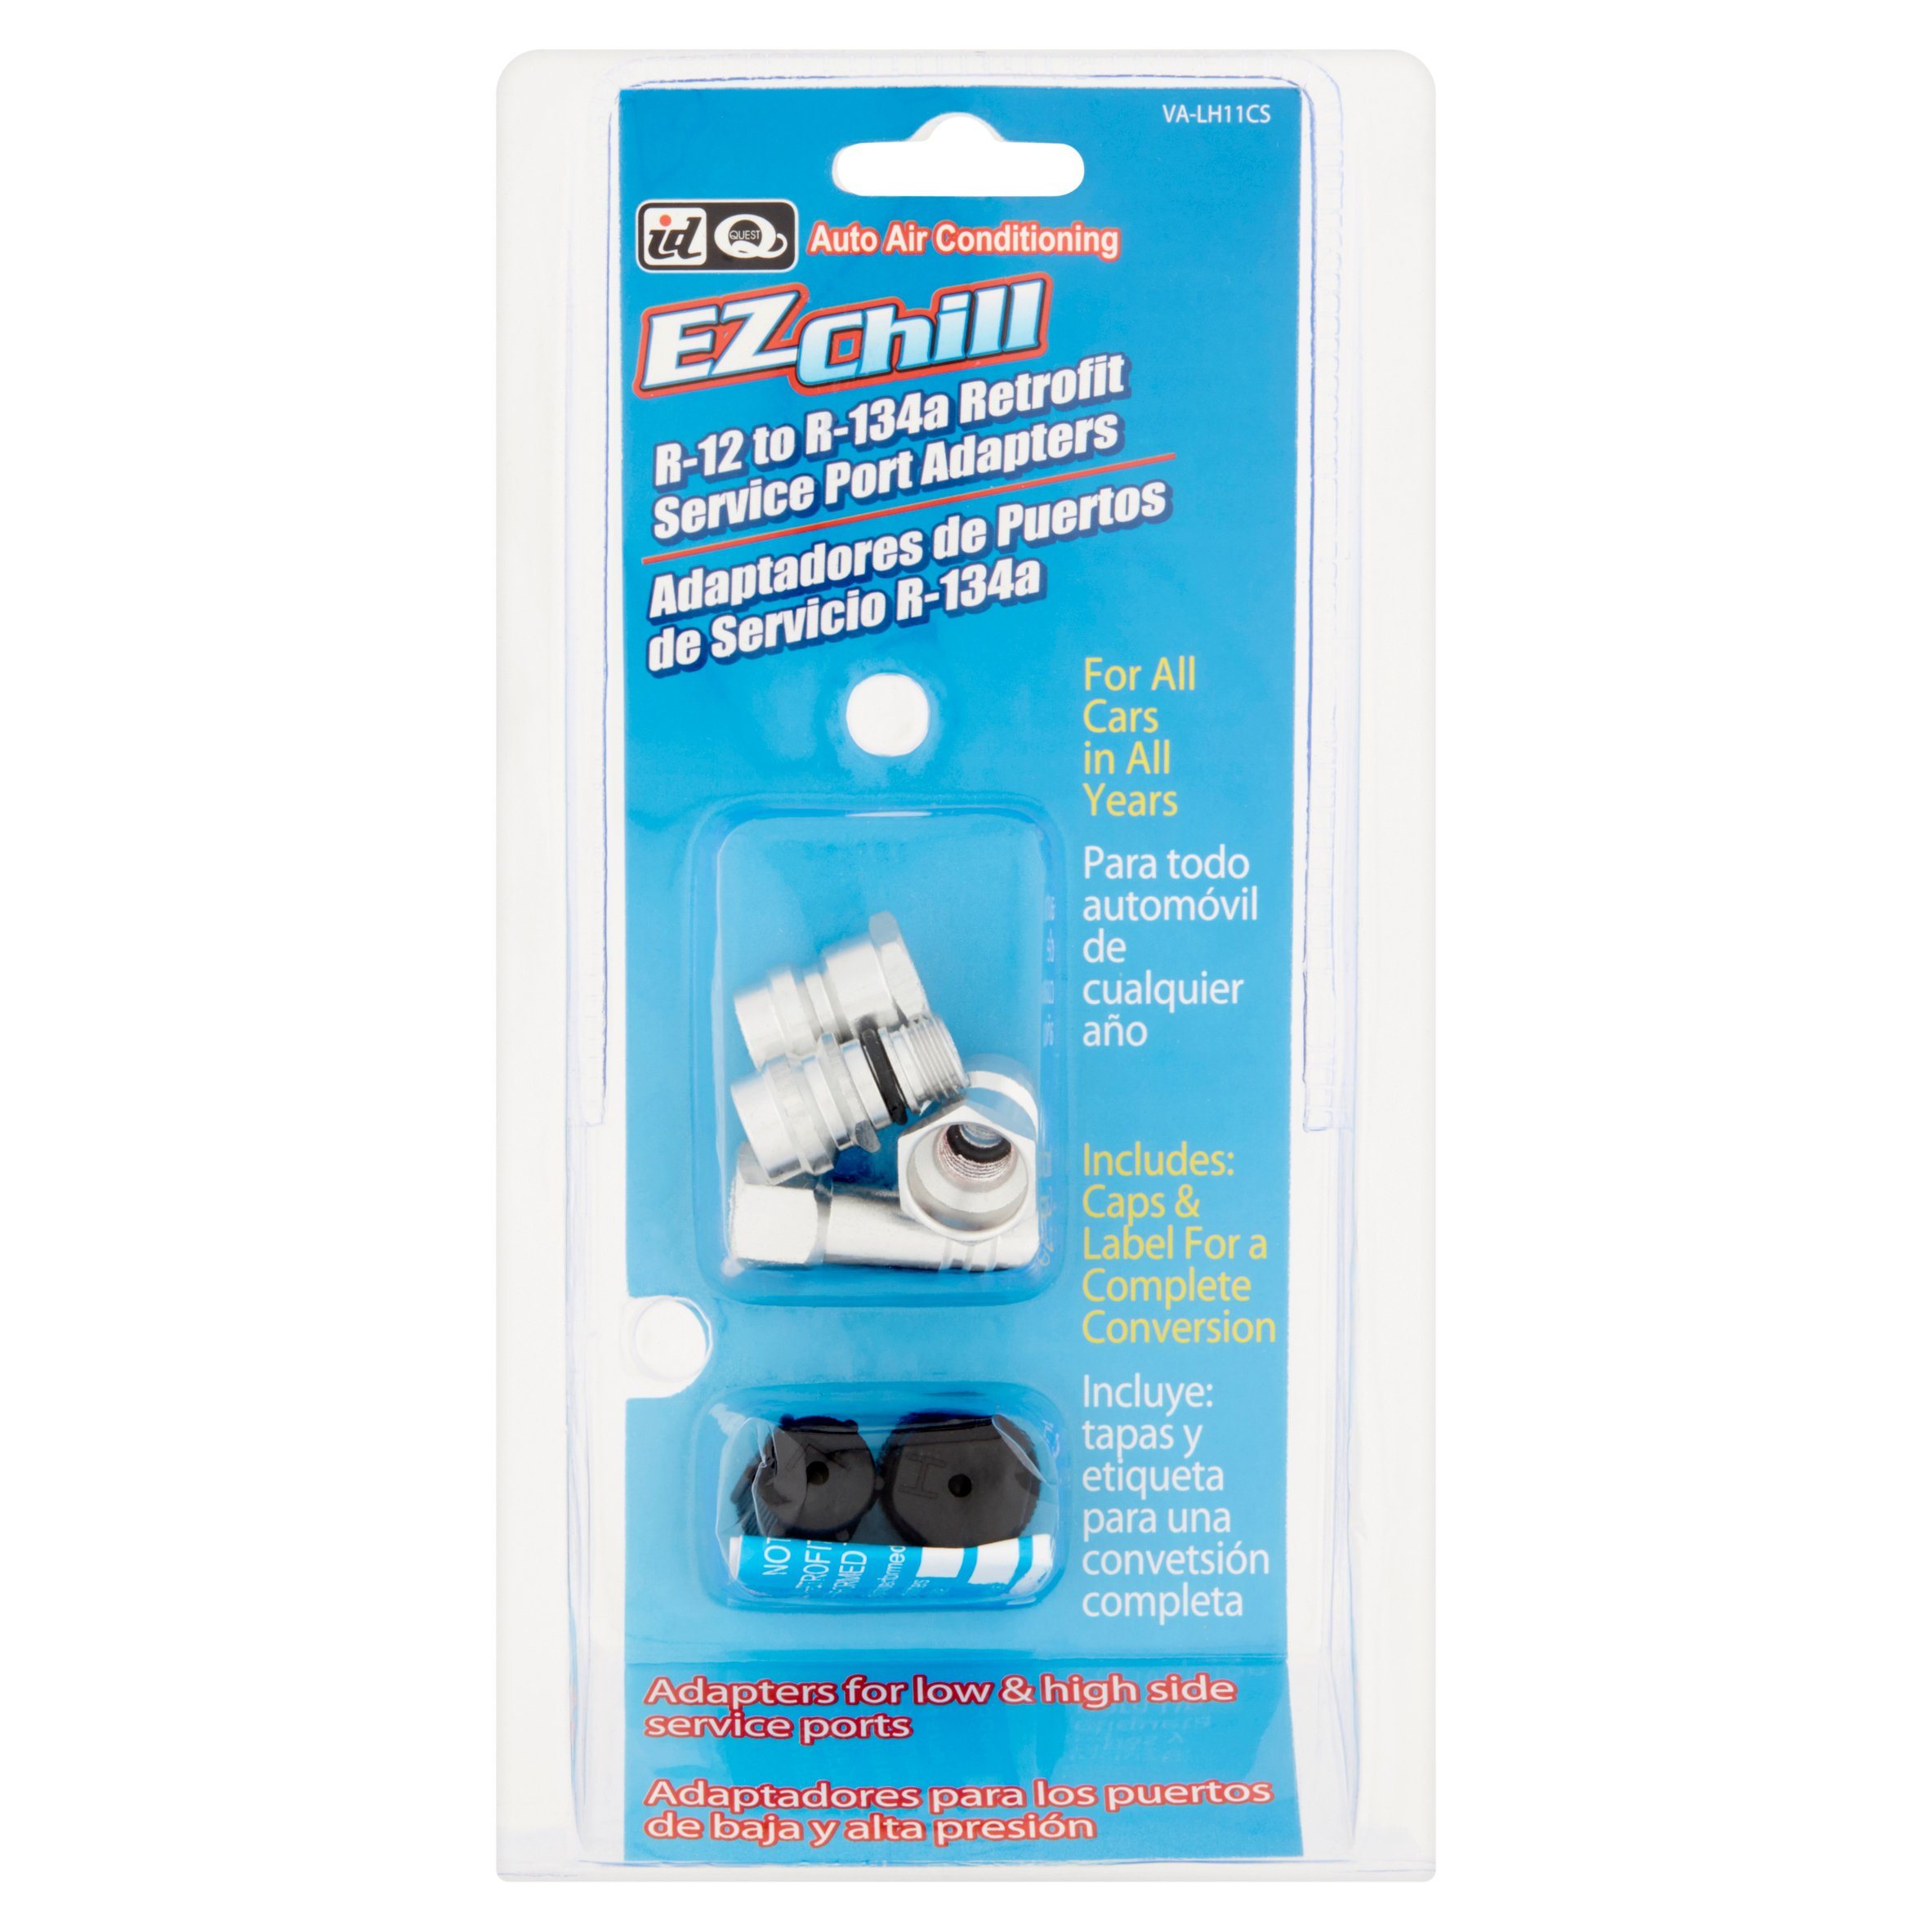 ID Quest Ez Chill R-12 to R-134a Retrofit Service Port Adapters